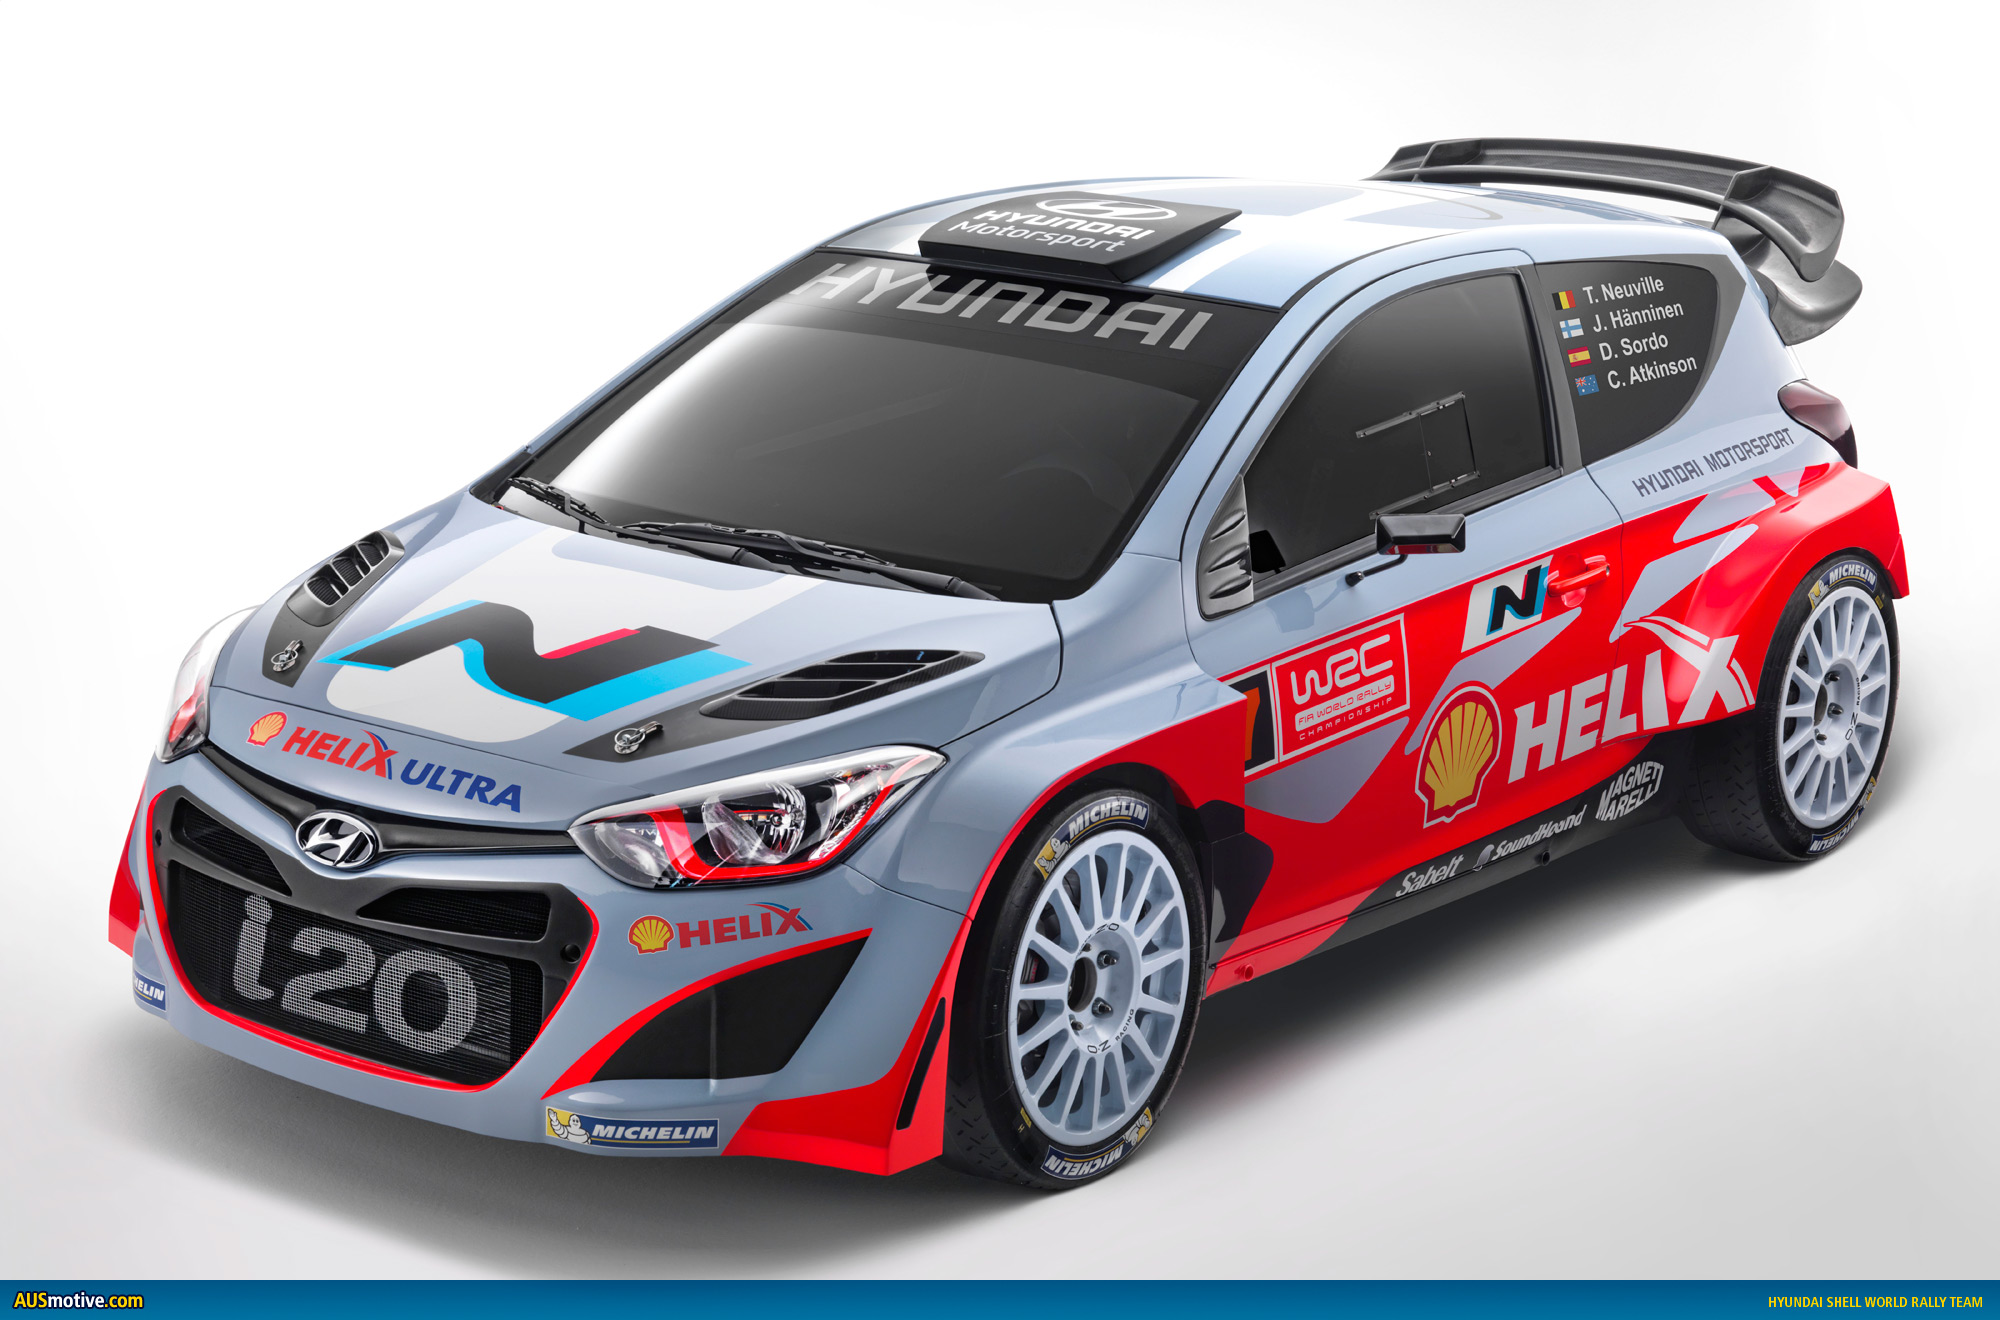 Hyundai I30n >> AUSmotive.com » Hyundai Motorsport launches i20 WRC car